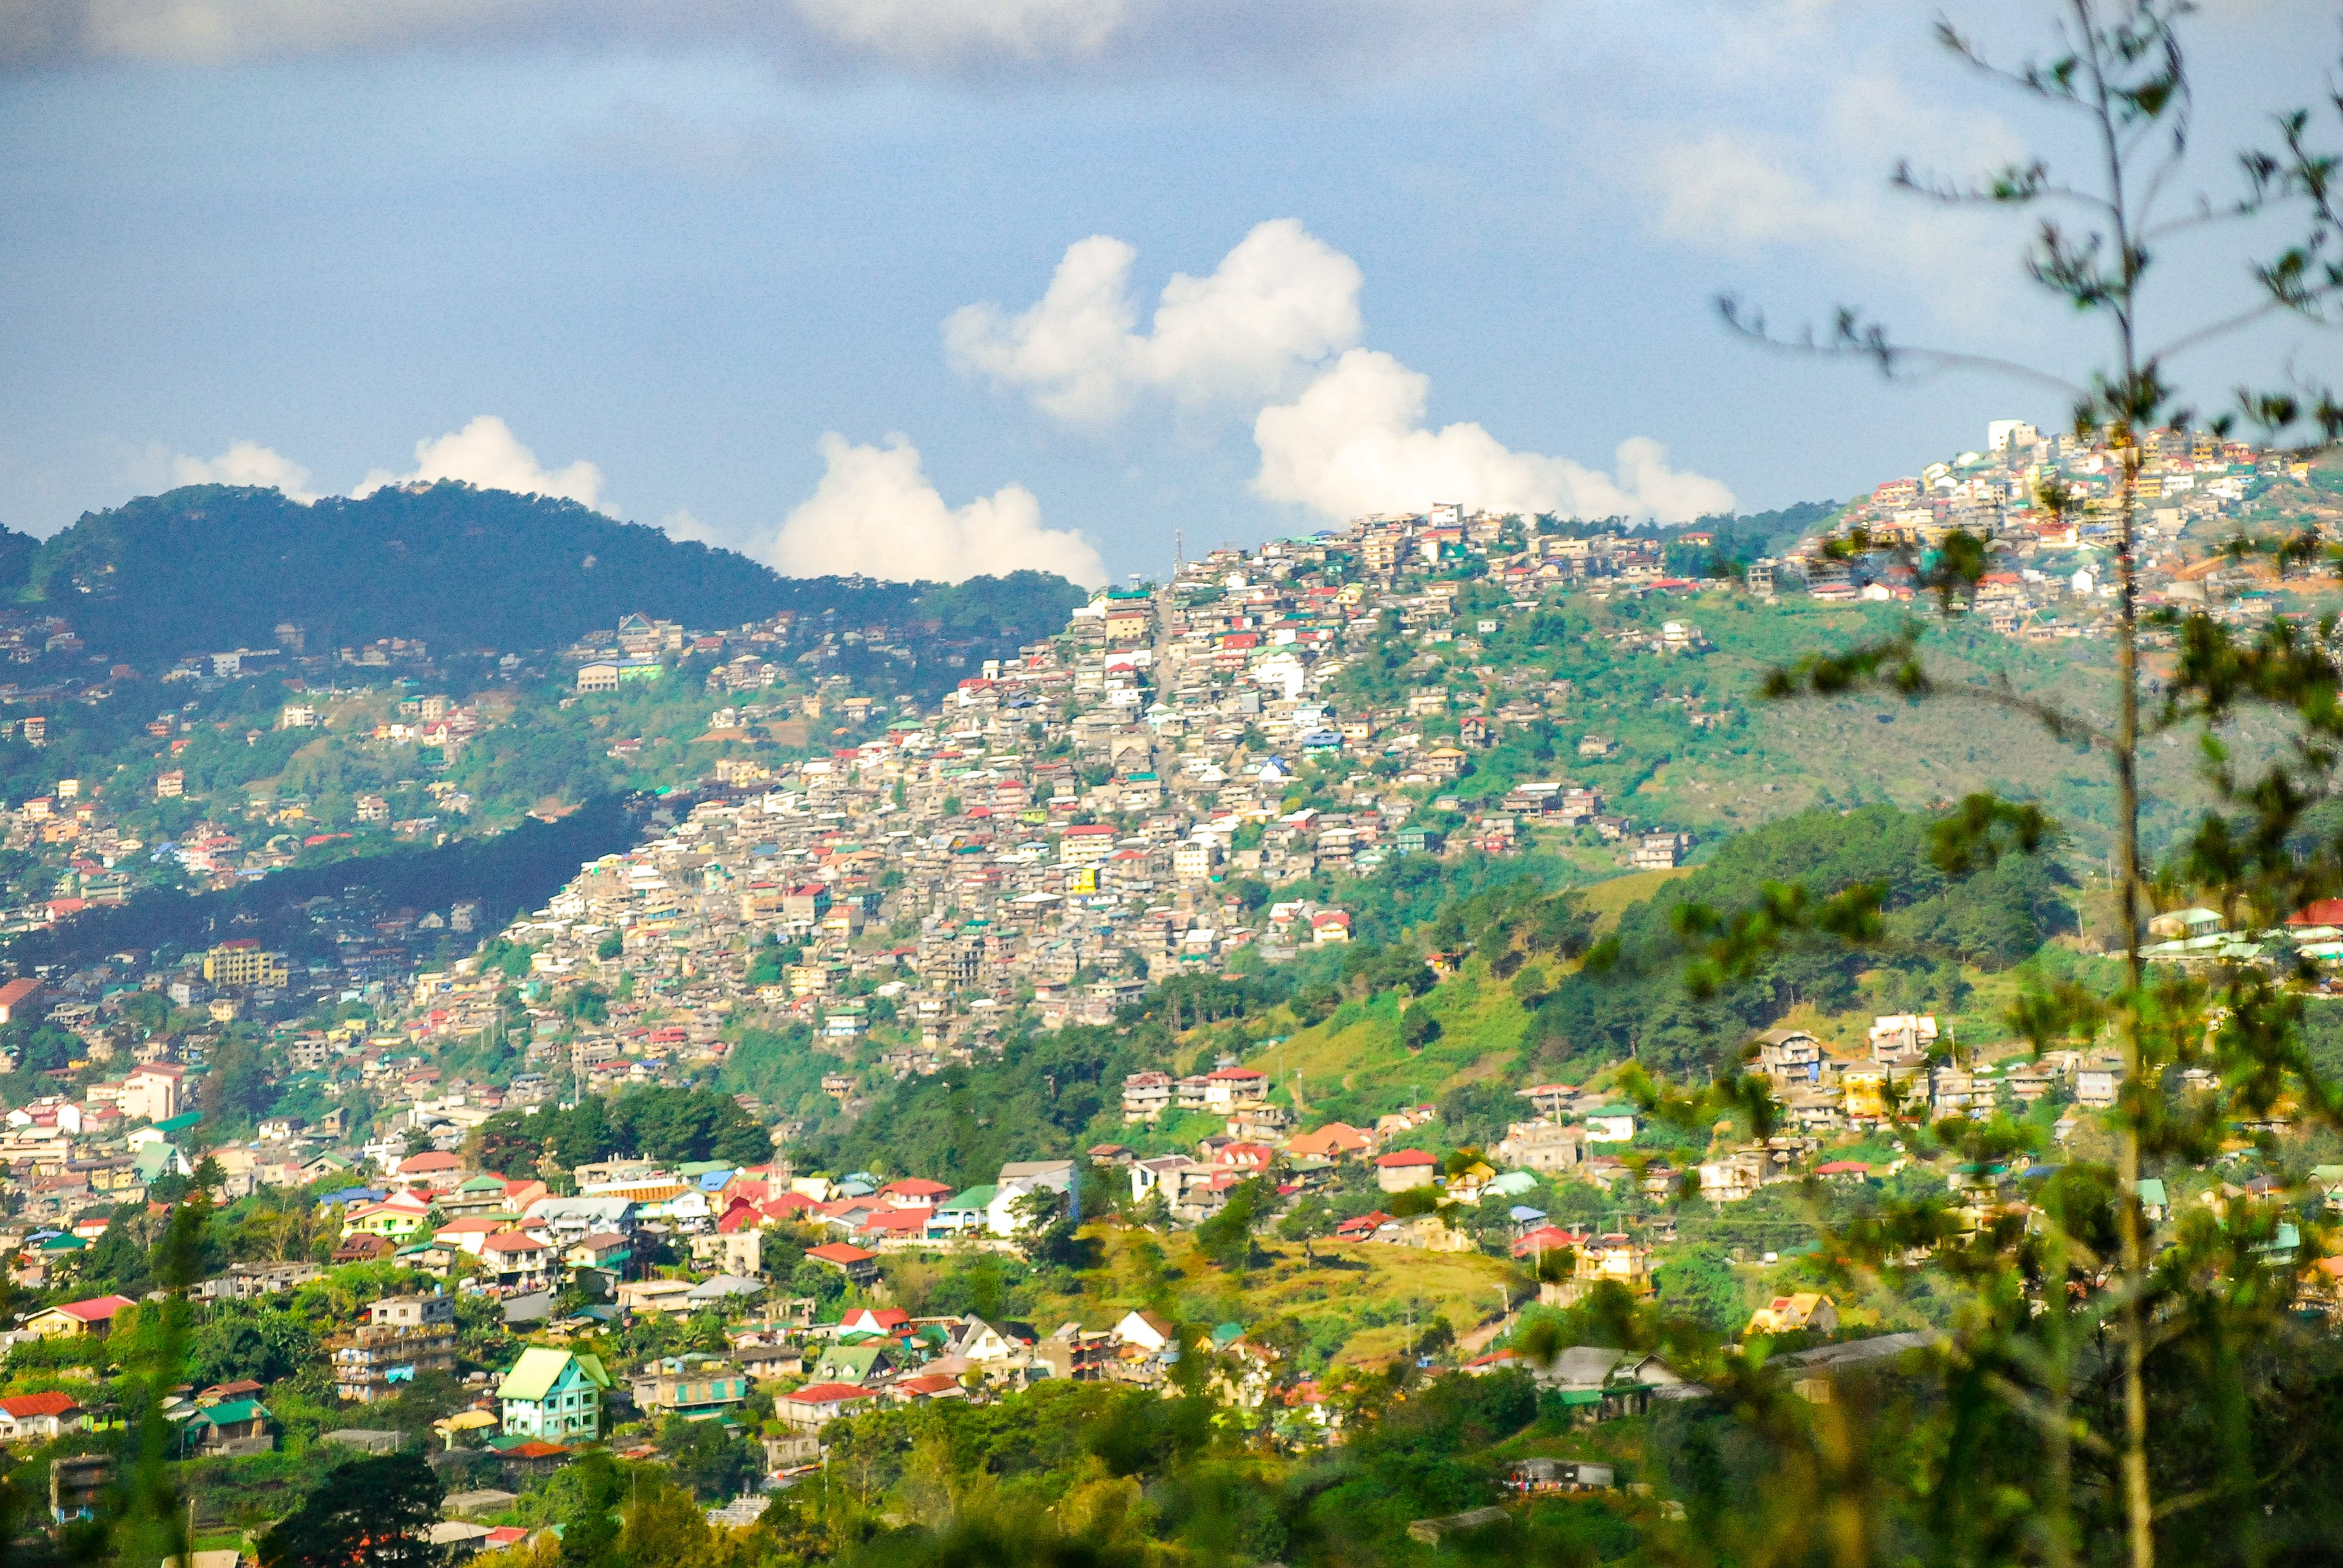 Baguio City view from Mines View Park